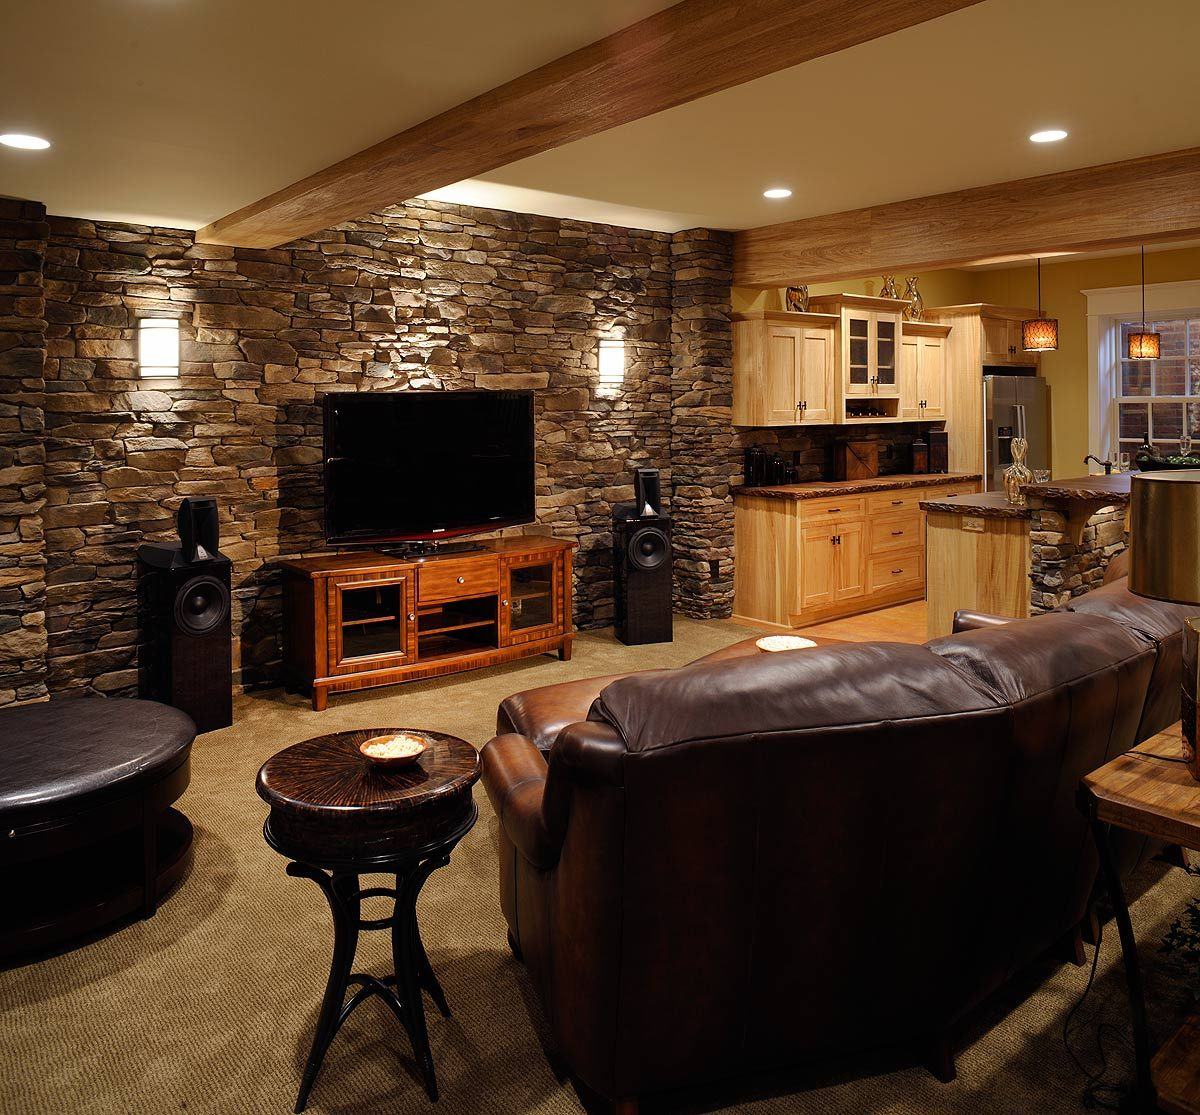 Designer Basements: I Like The End Table And The Tv Stand. The Rock Is Very